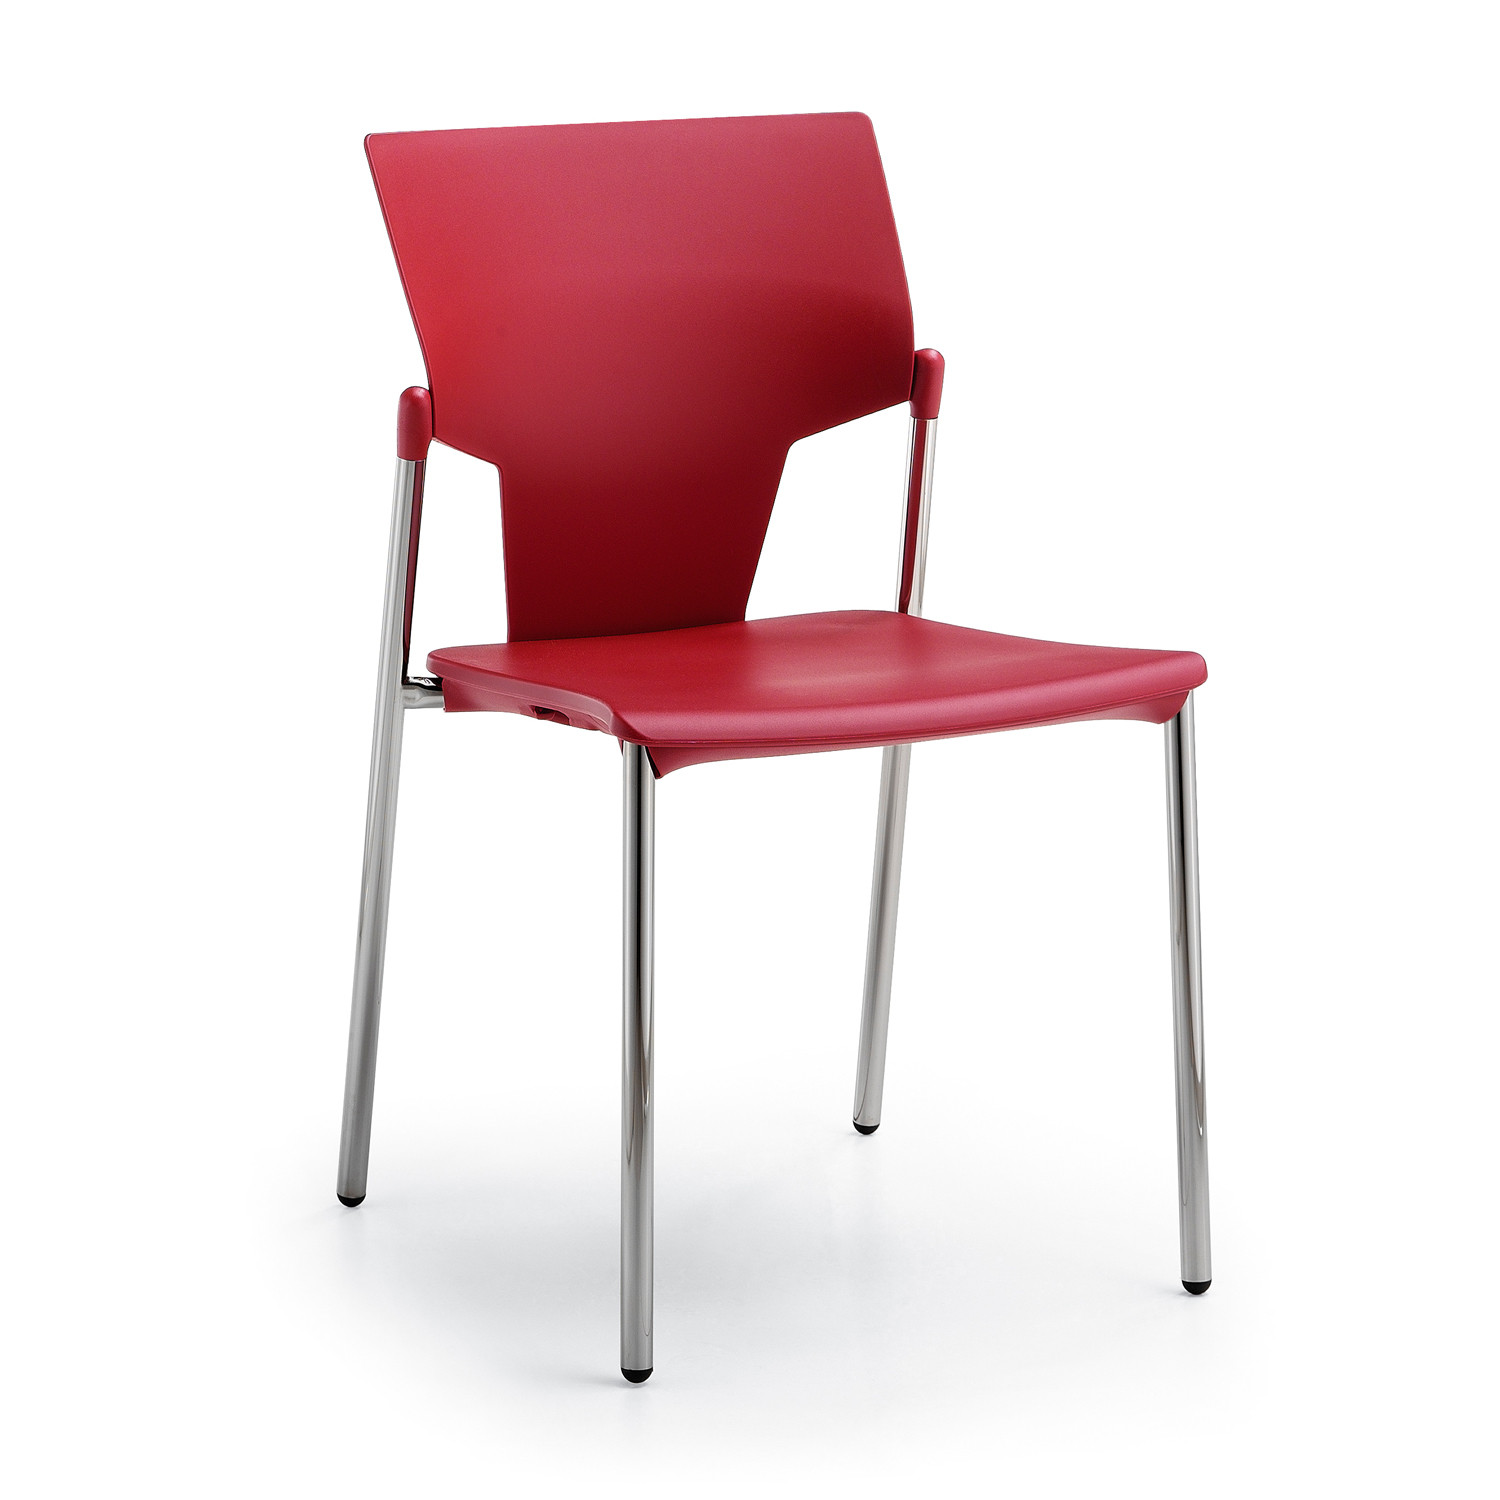 Ikon Red Chair